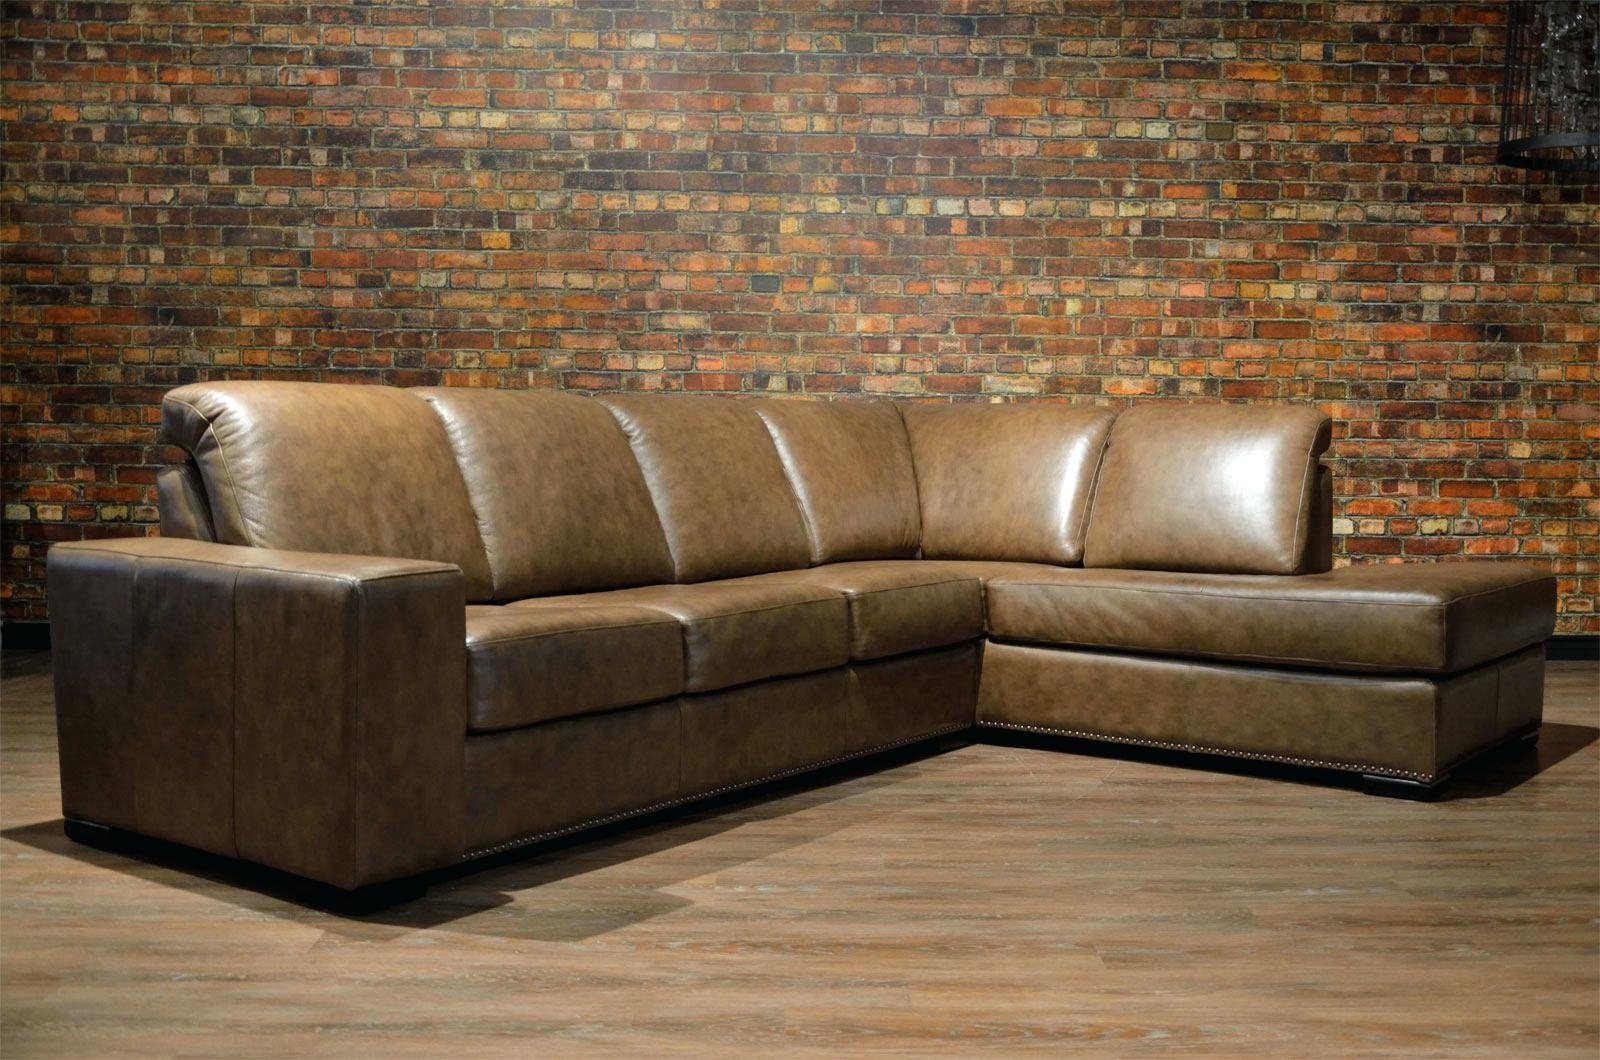 Used Leather Couches For Sale Sectional Canada Cheap Cape Town Couch Within Sectional Sofas At Bc Canada (Photo 9 of 10)